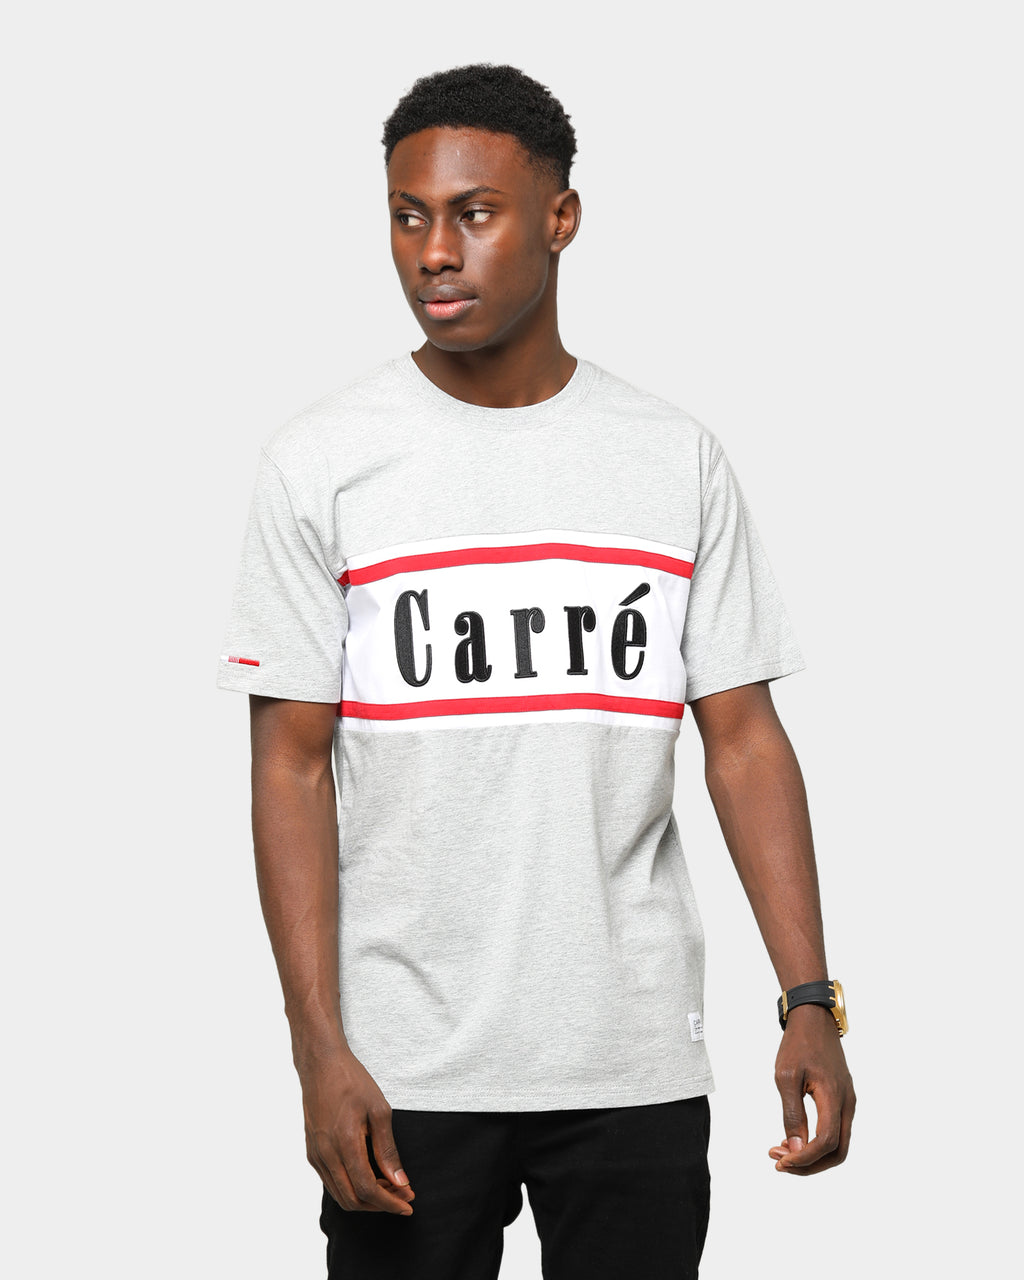 Carré Hardila Plage Classique Short Sleeve T-Shirt Grey Marle/White